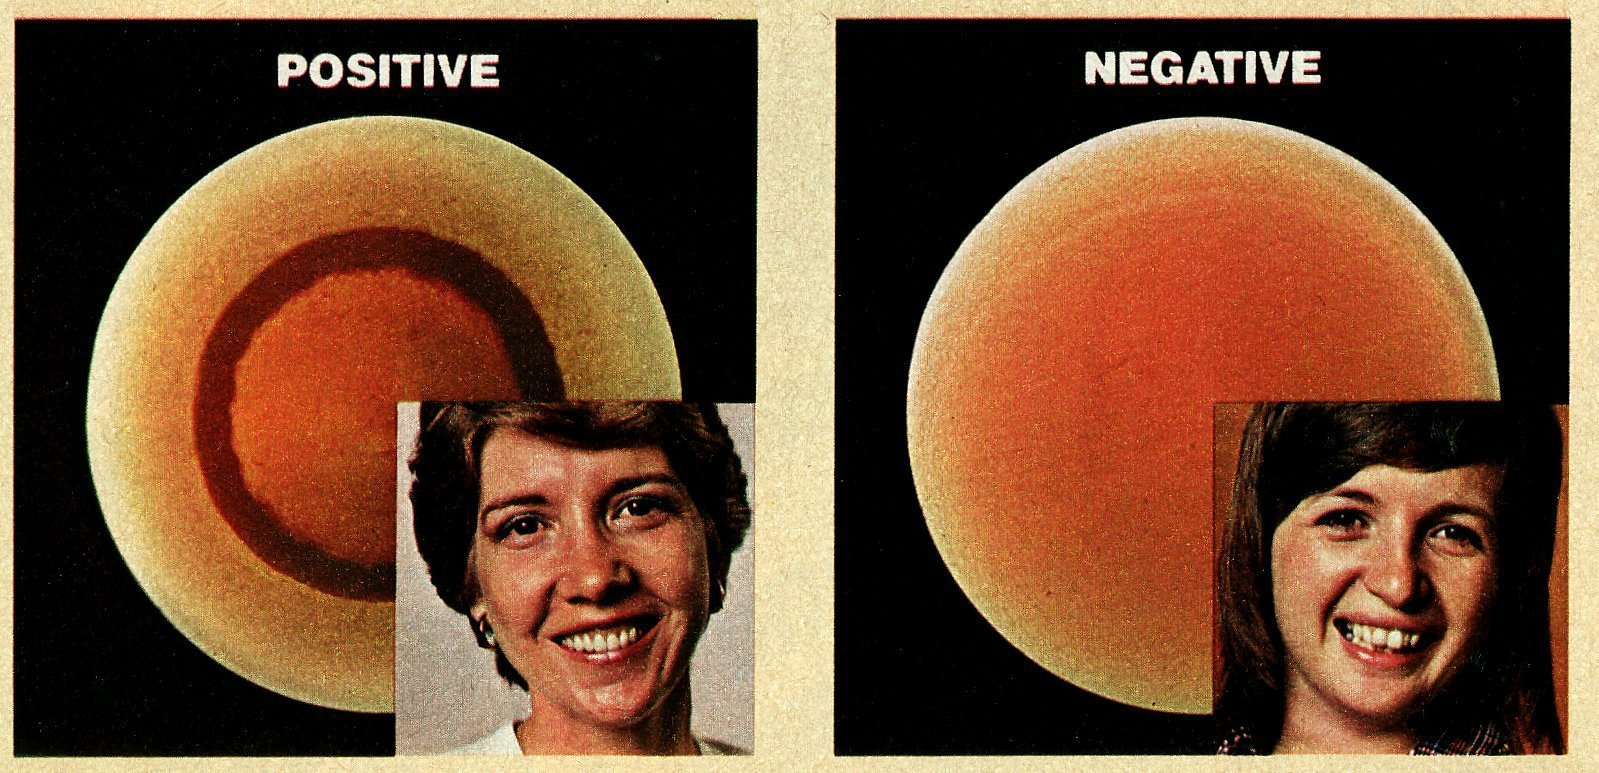 Old test tube pregnancy test kits from 1979 (3)